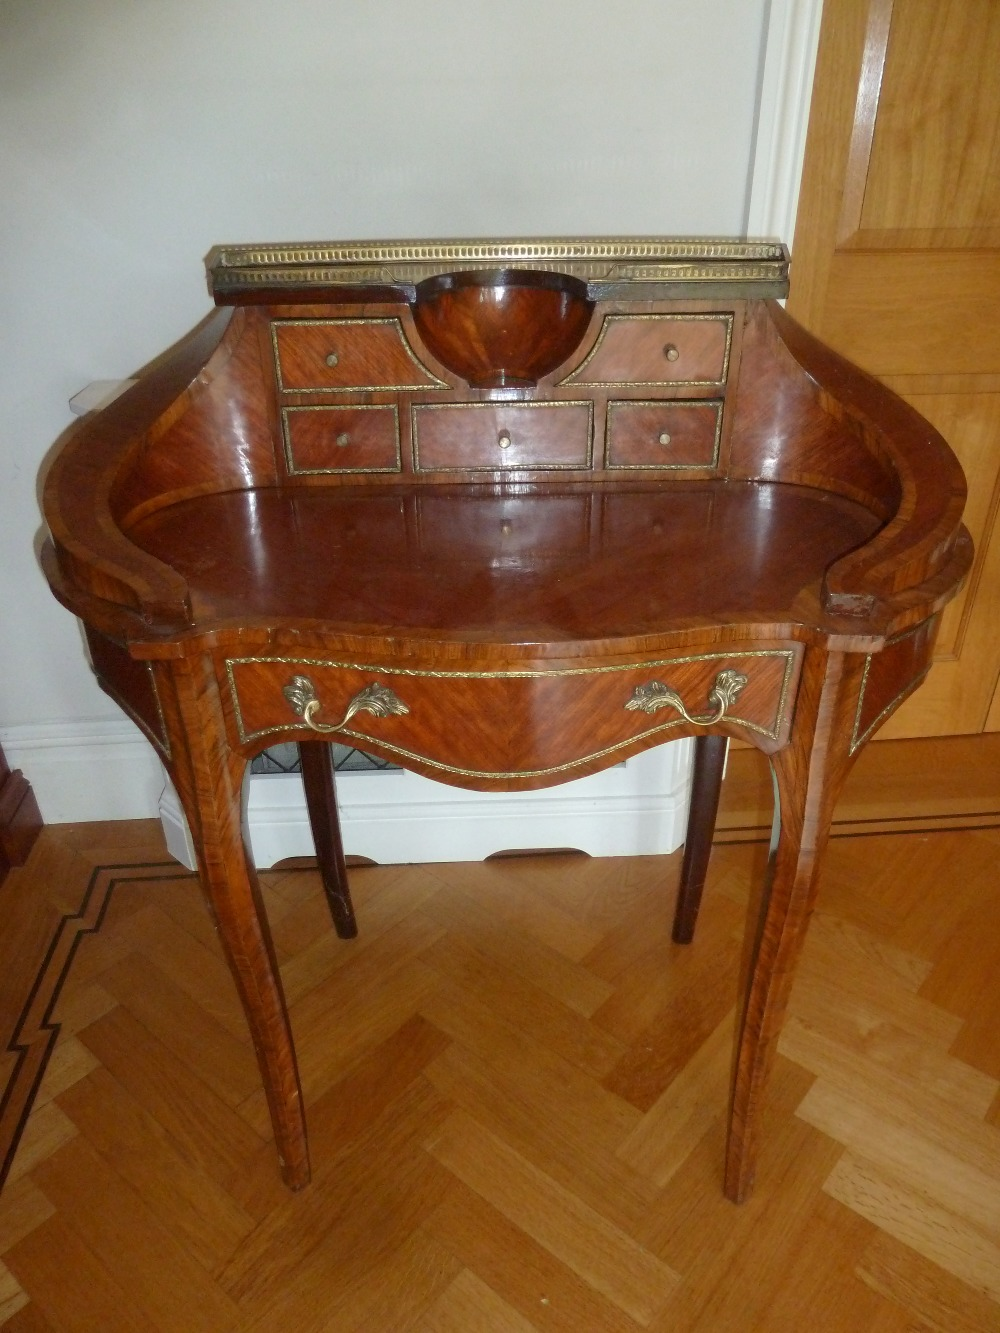 Lot 7 - A kingswood shaped oval inlaid desk with gallery and six drawers on cabriole legs